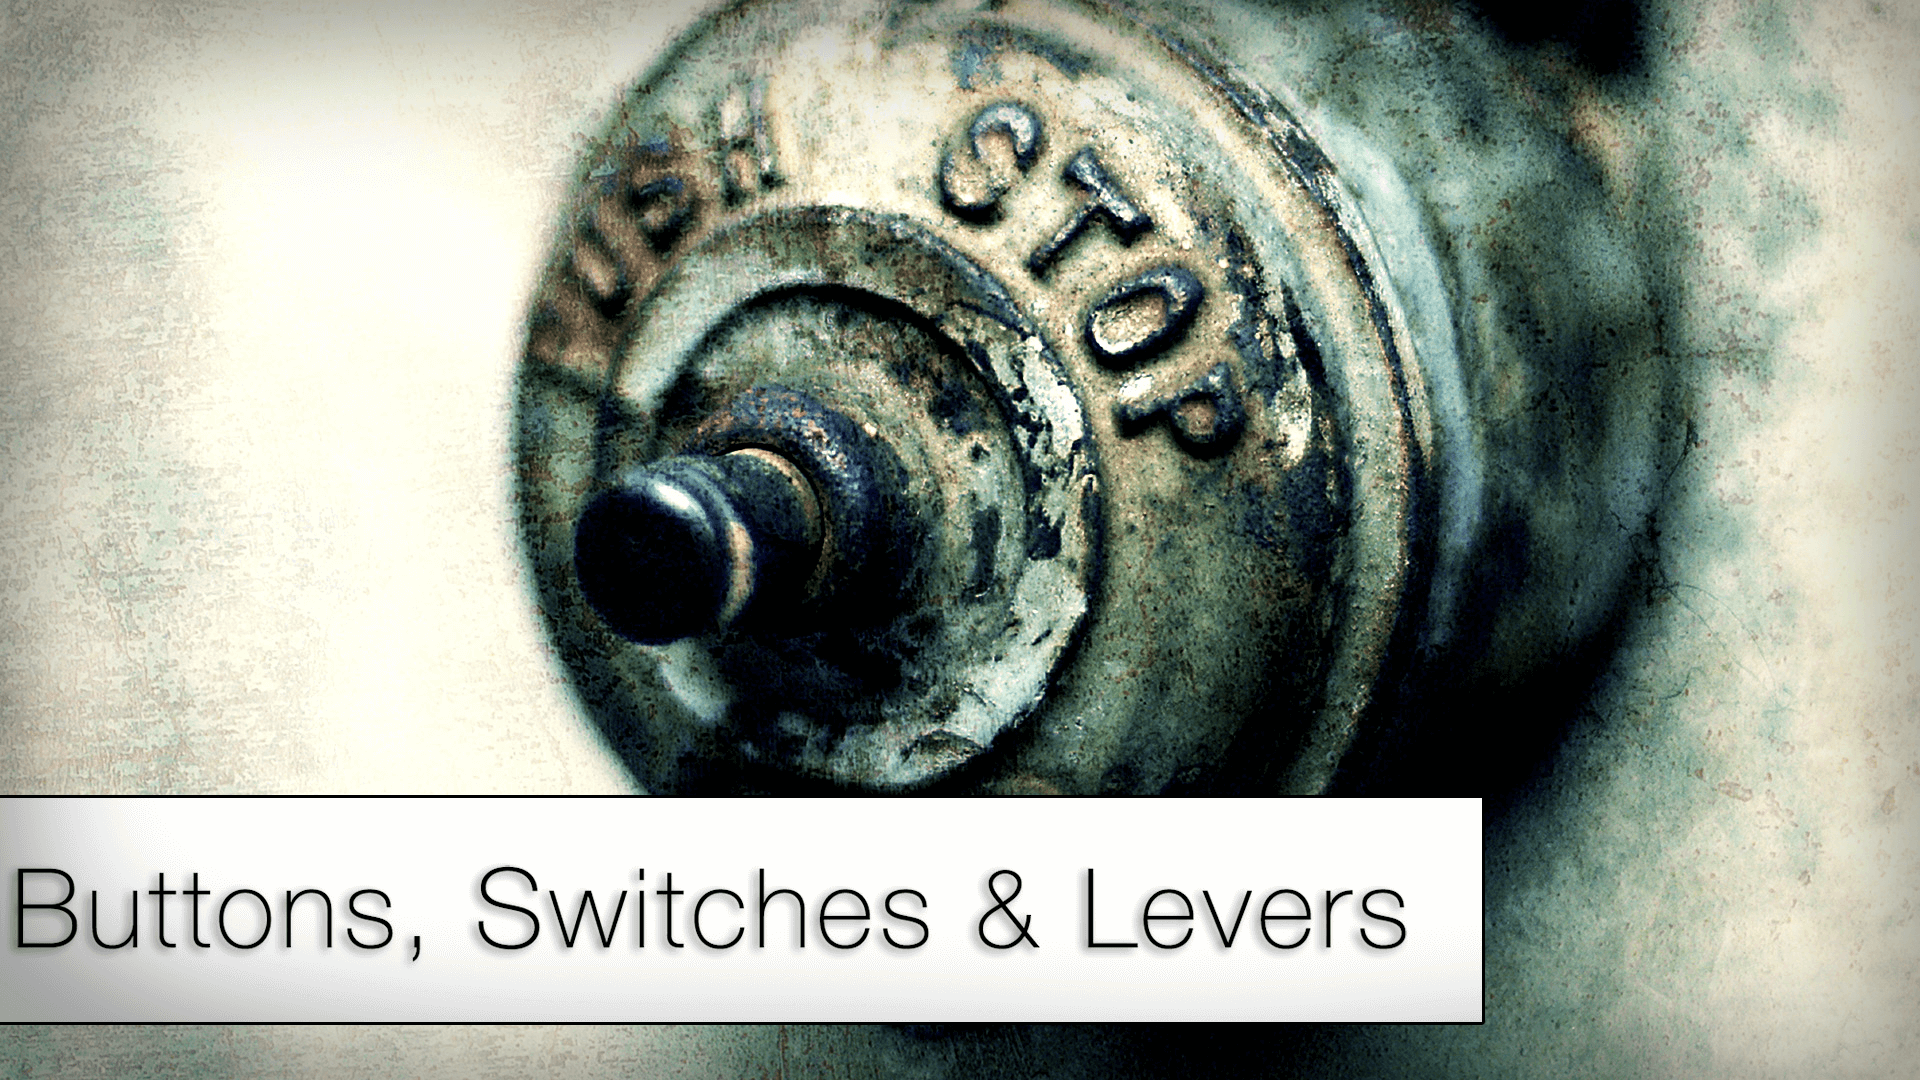 Buttons, Switches & Levers by SoundBits in Sound Effects - UE4